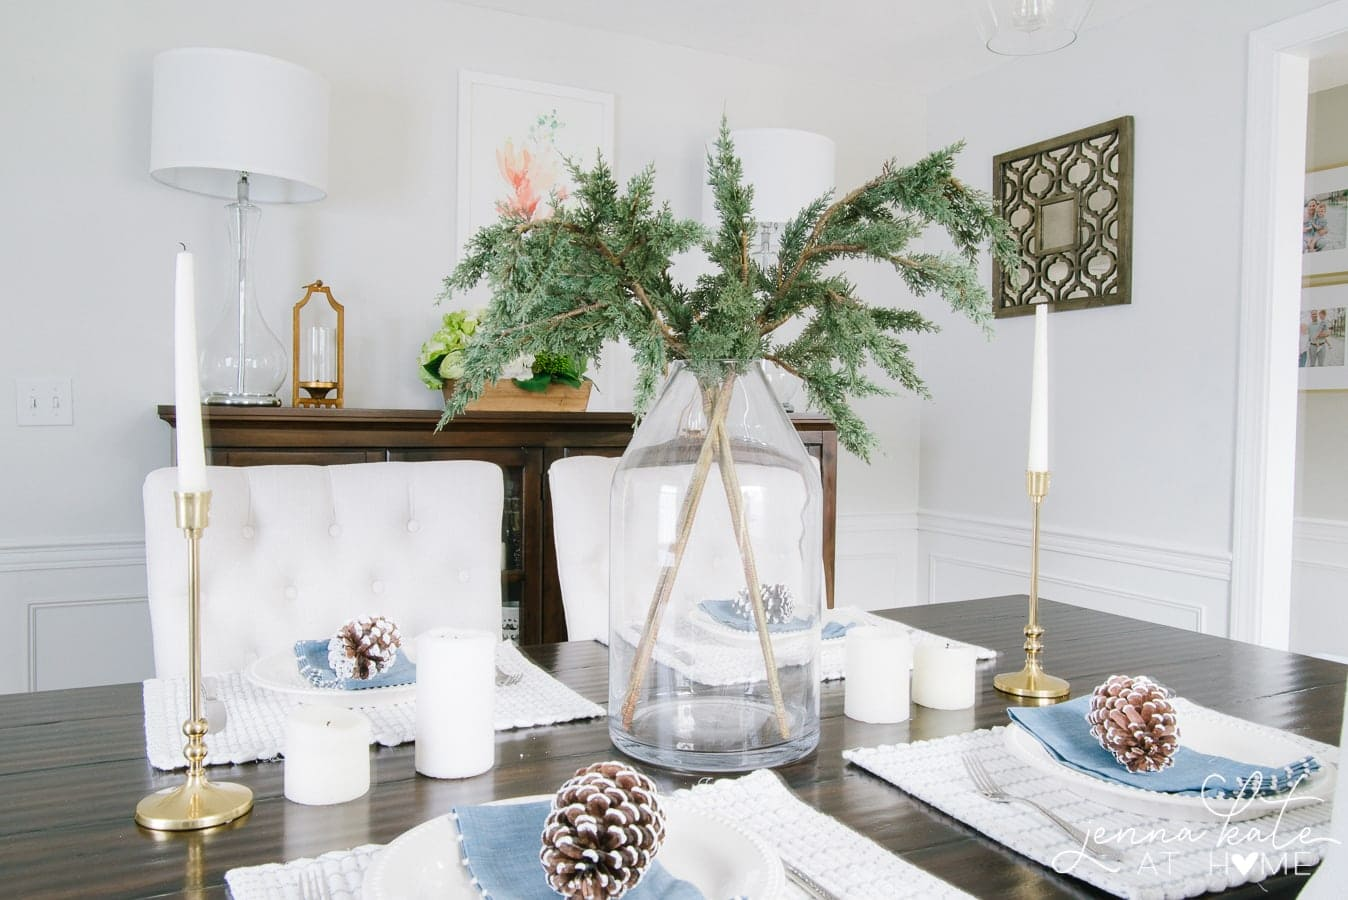 Monochromatic tablescape with shades of white and blue for winter